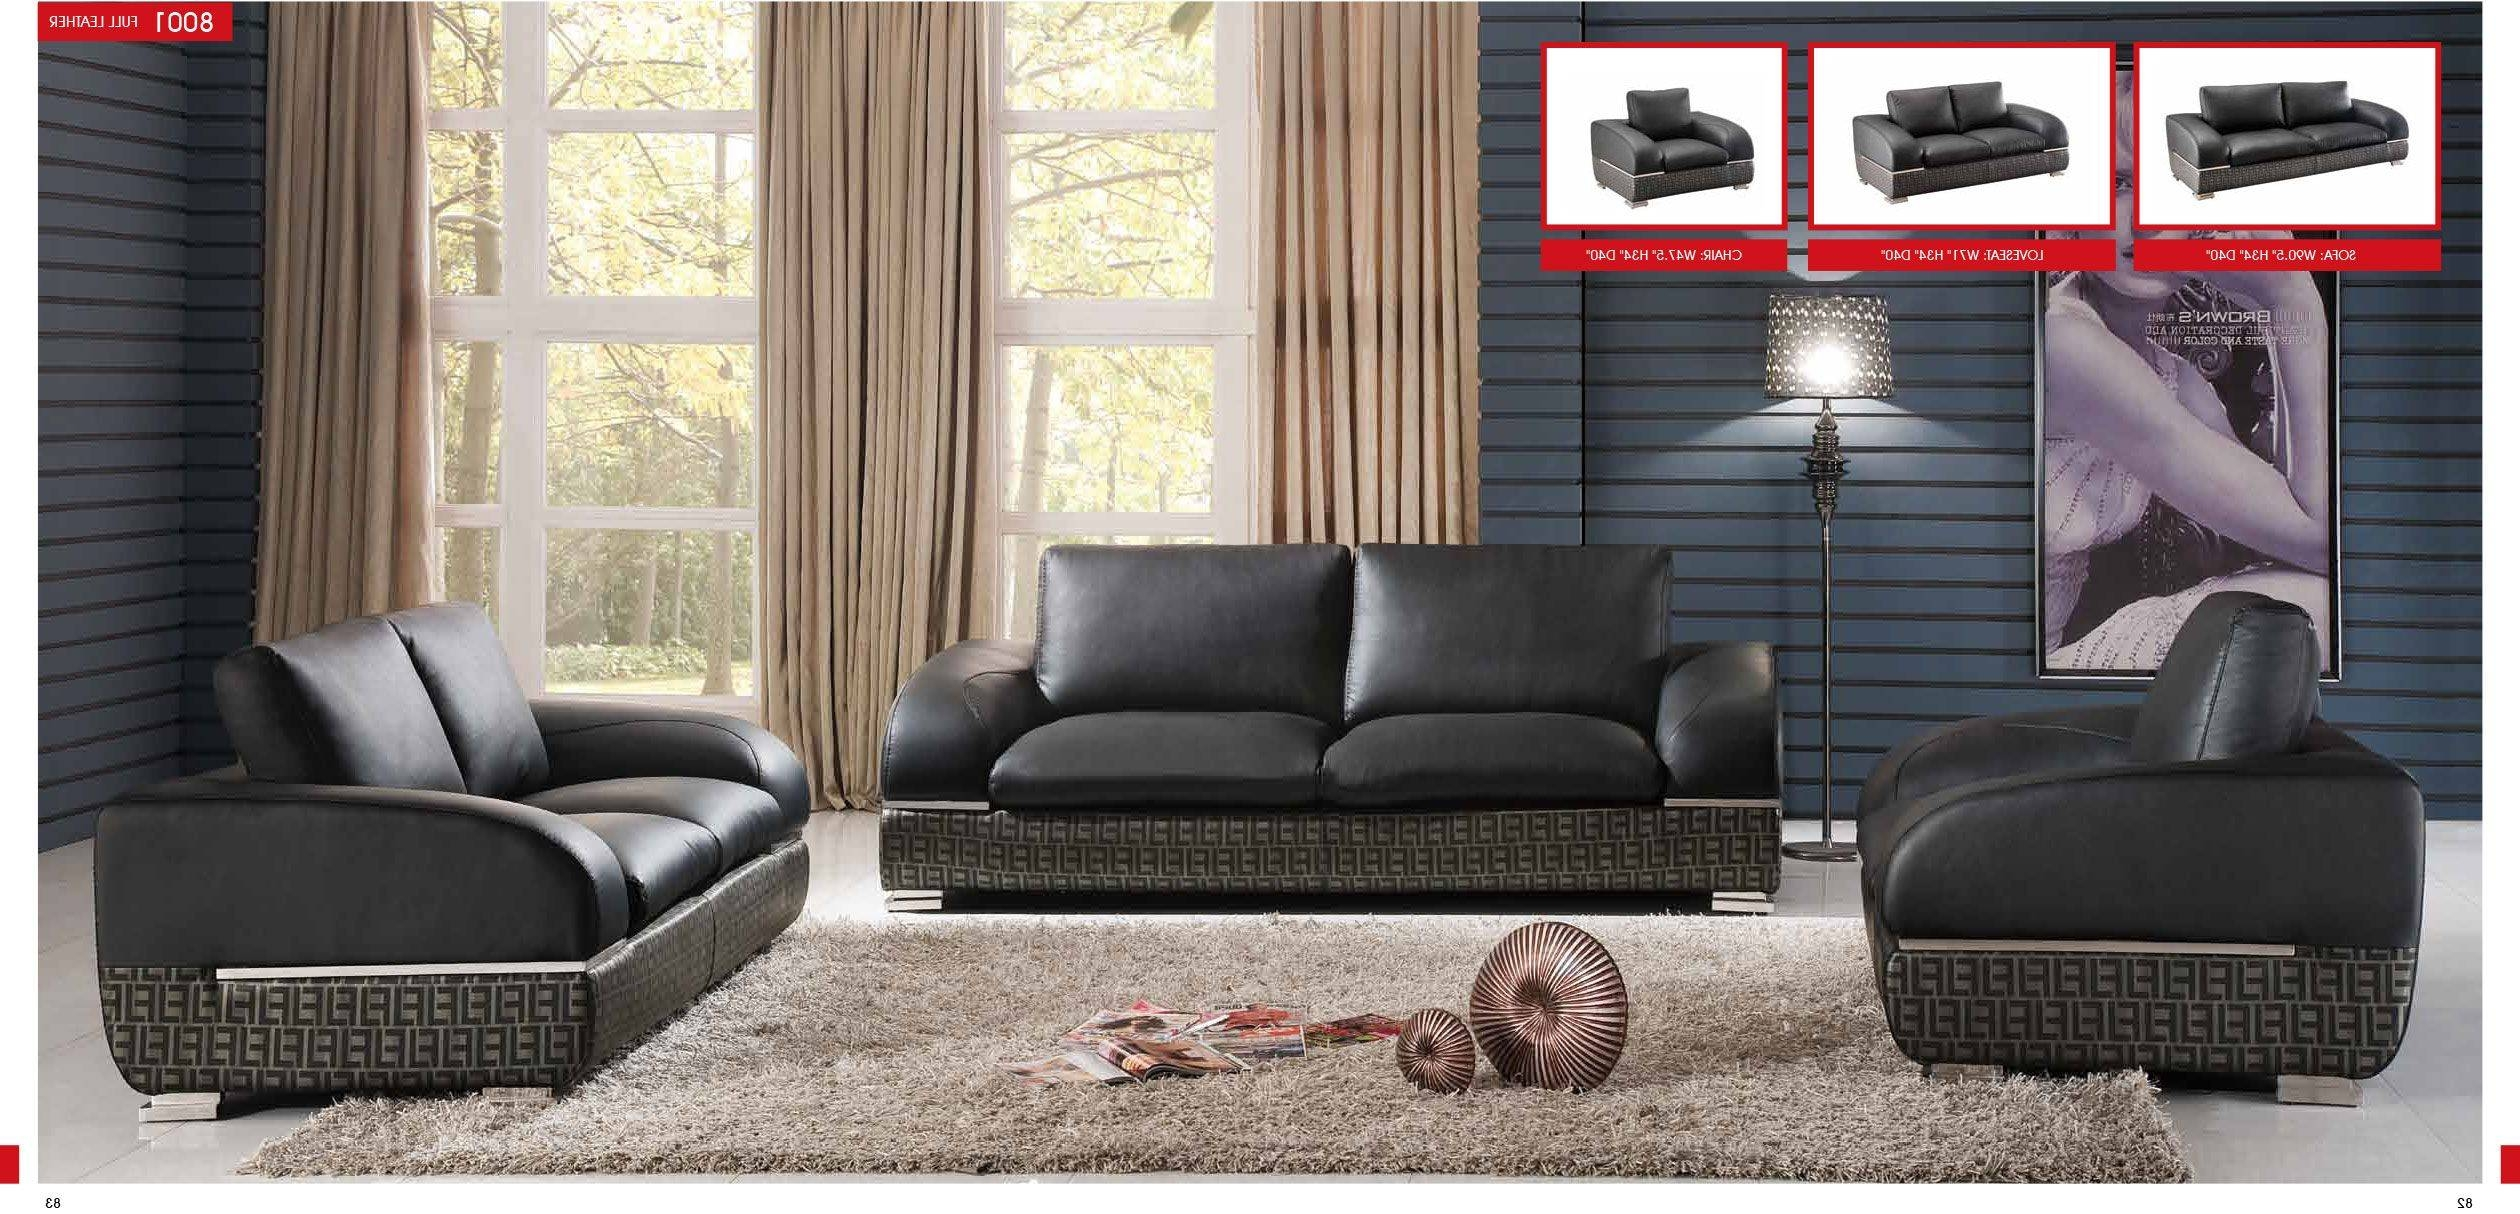 Elegant Sims 3 Sectional Sofa 21 For Your Albany Industries Within Albany Industries Sectional Sofa (View 17 of 30)